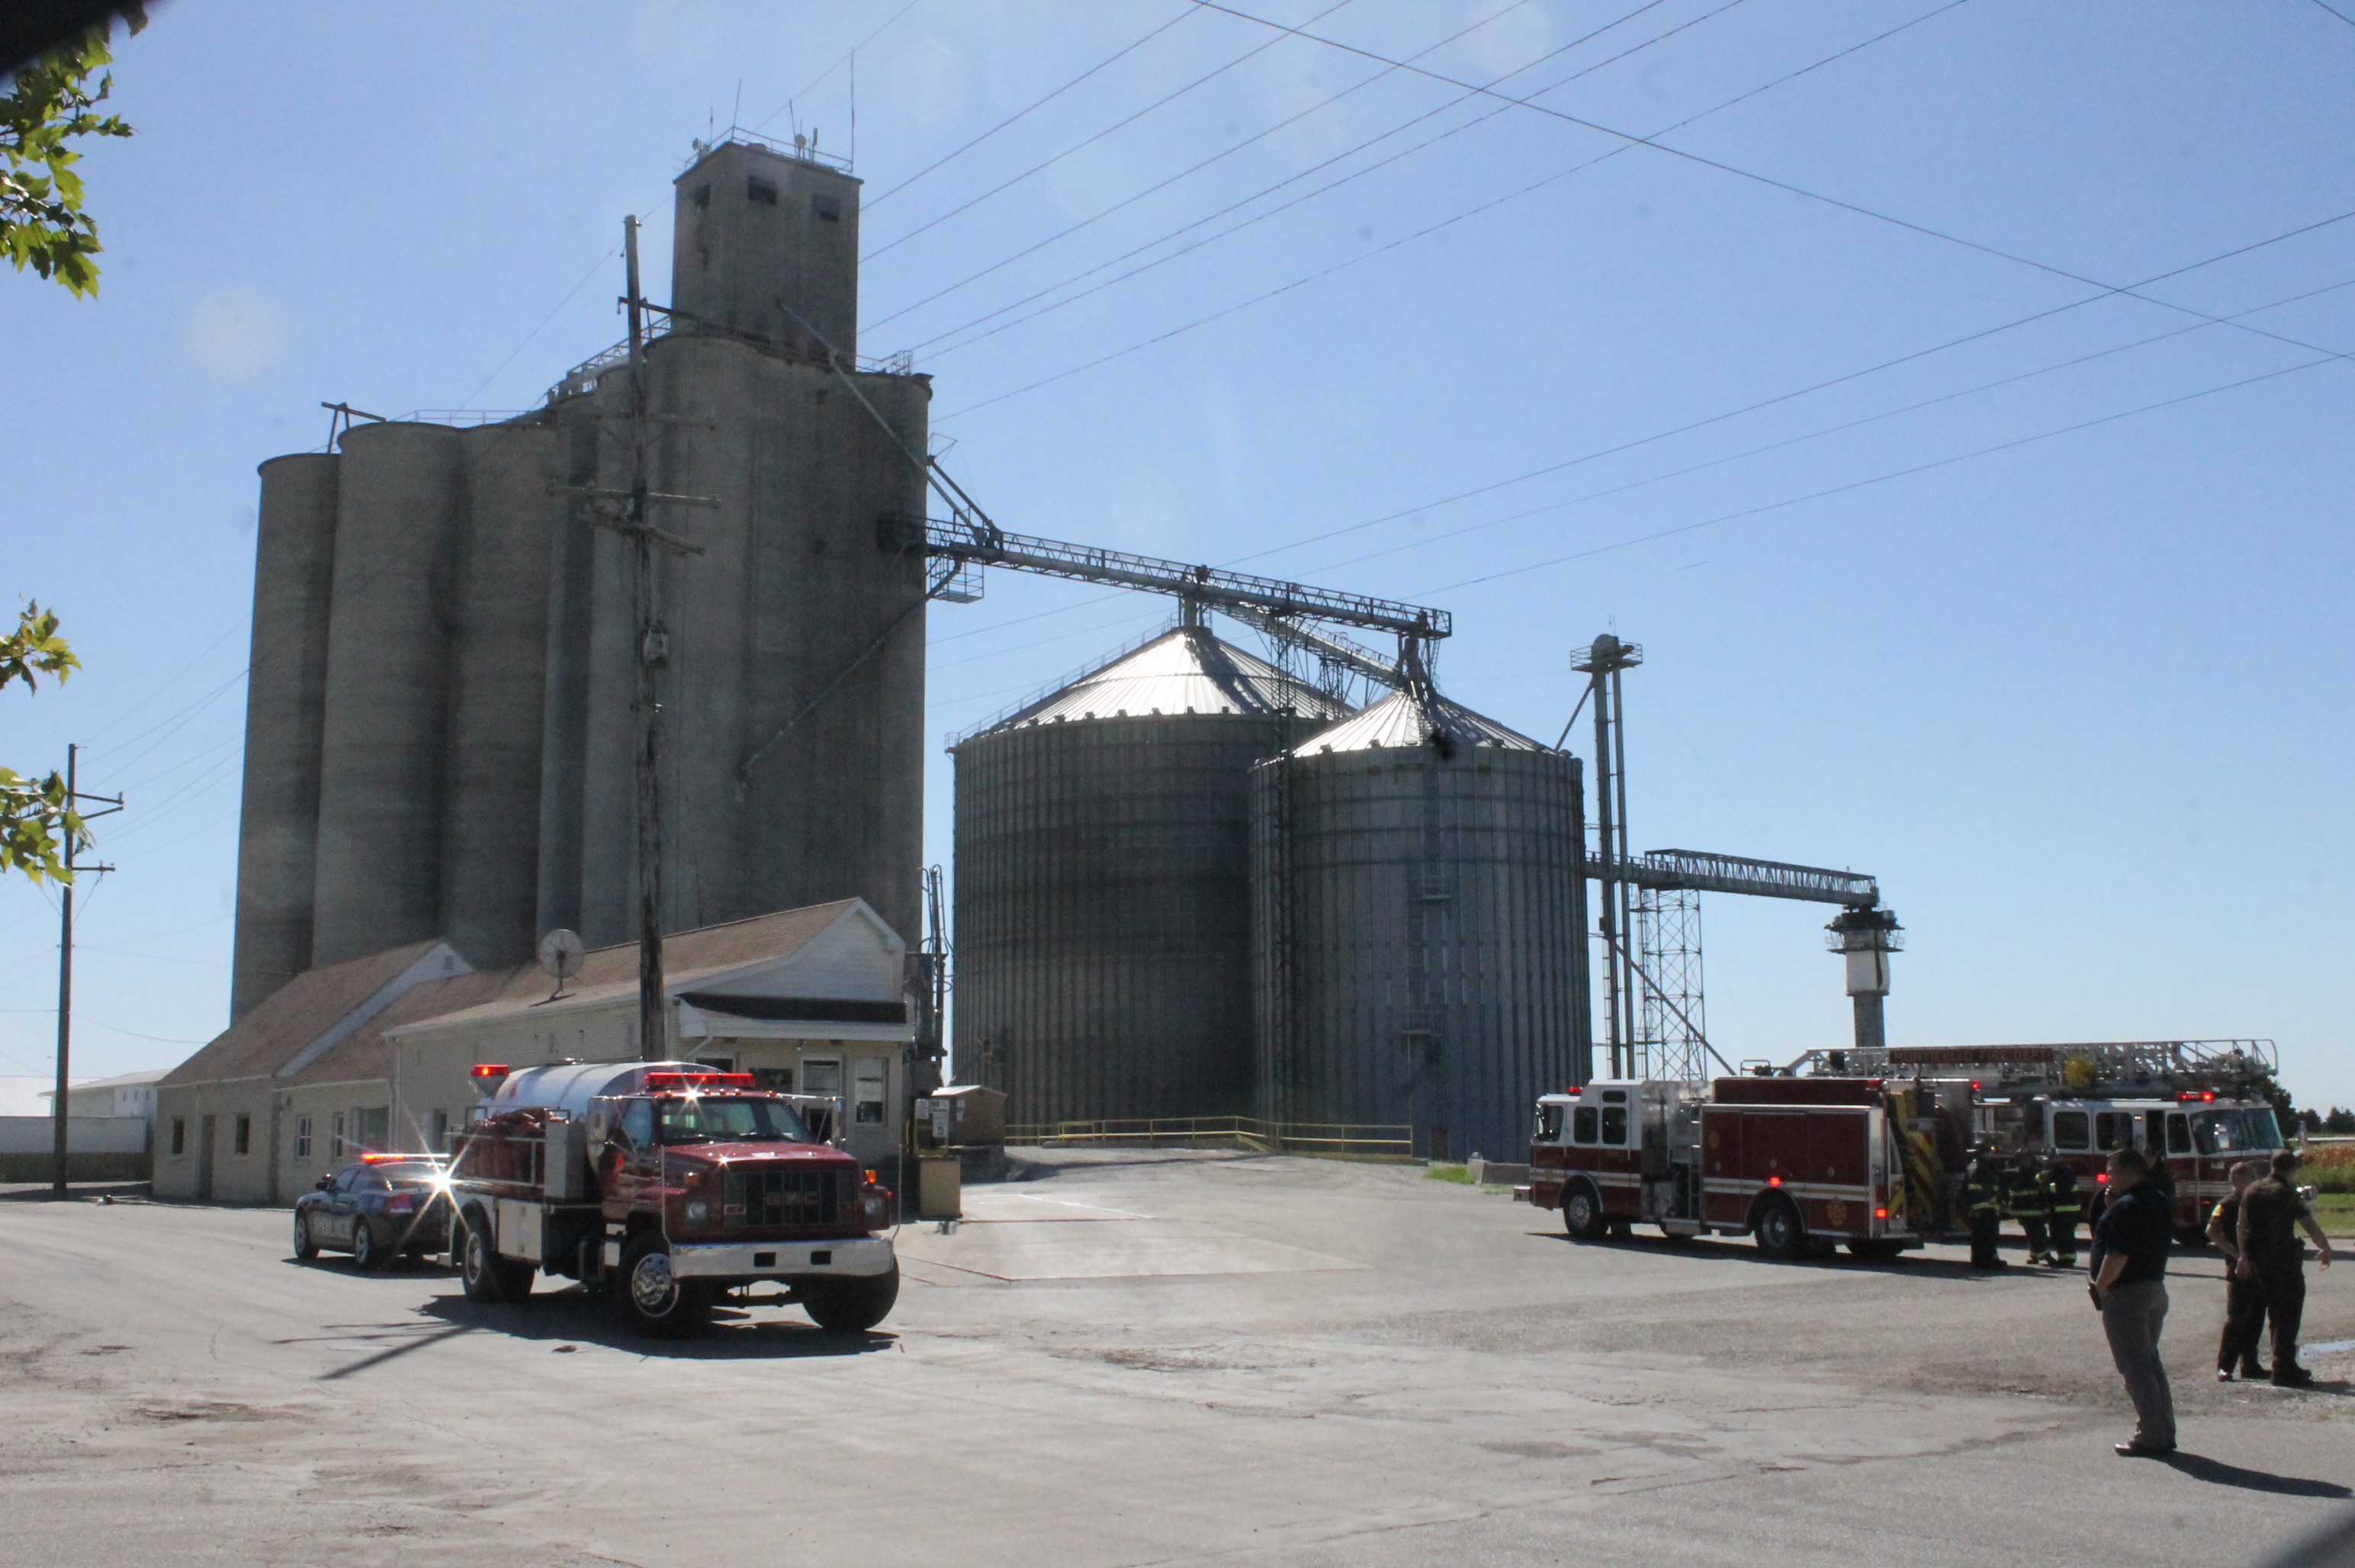 Indiana pulaski county francesville - One Of The Men Injured In Last Month S Gain Elevator Explosion In Francesville Has Died As A Result Of His Injuries Timothy Reidelbach 57 Of Winamac Died